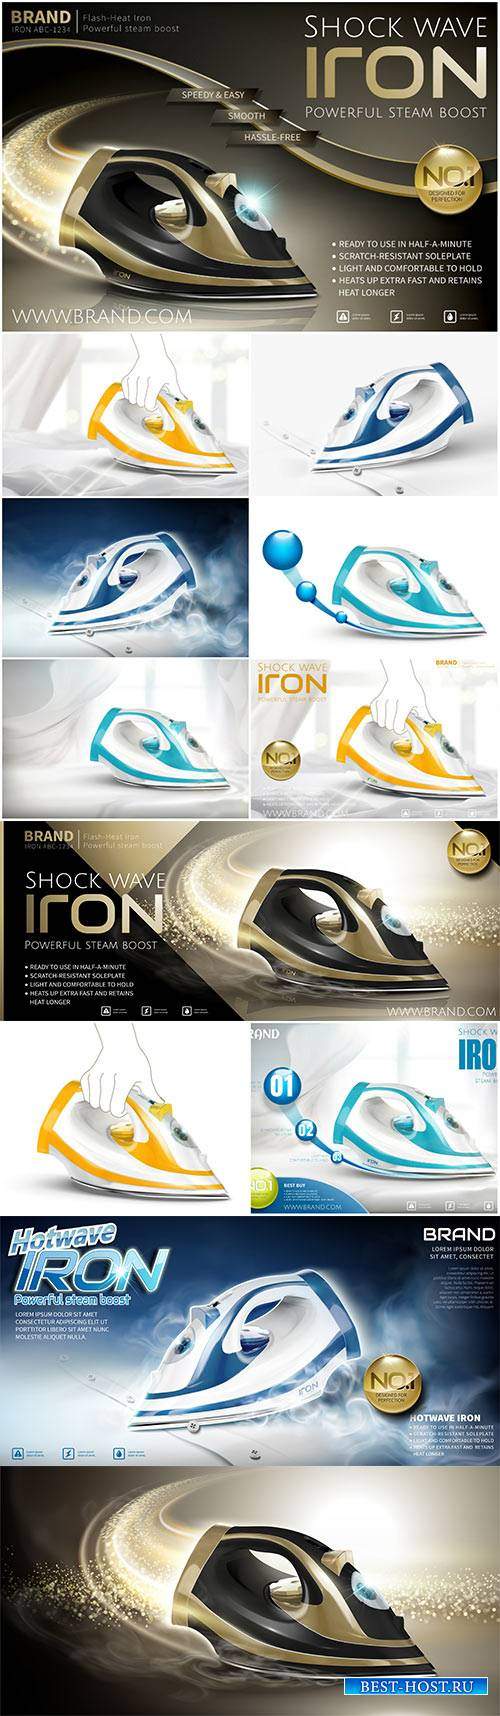 Iron in vector 3d illustration, steam iron advertisement